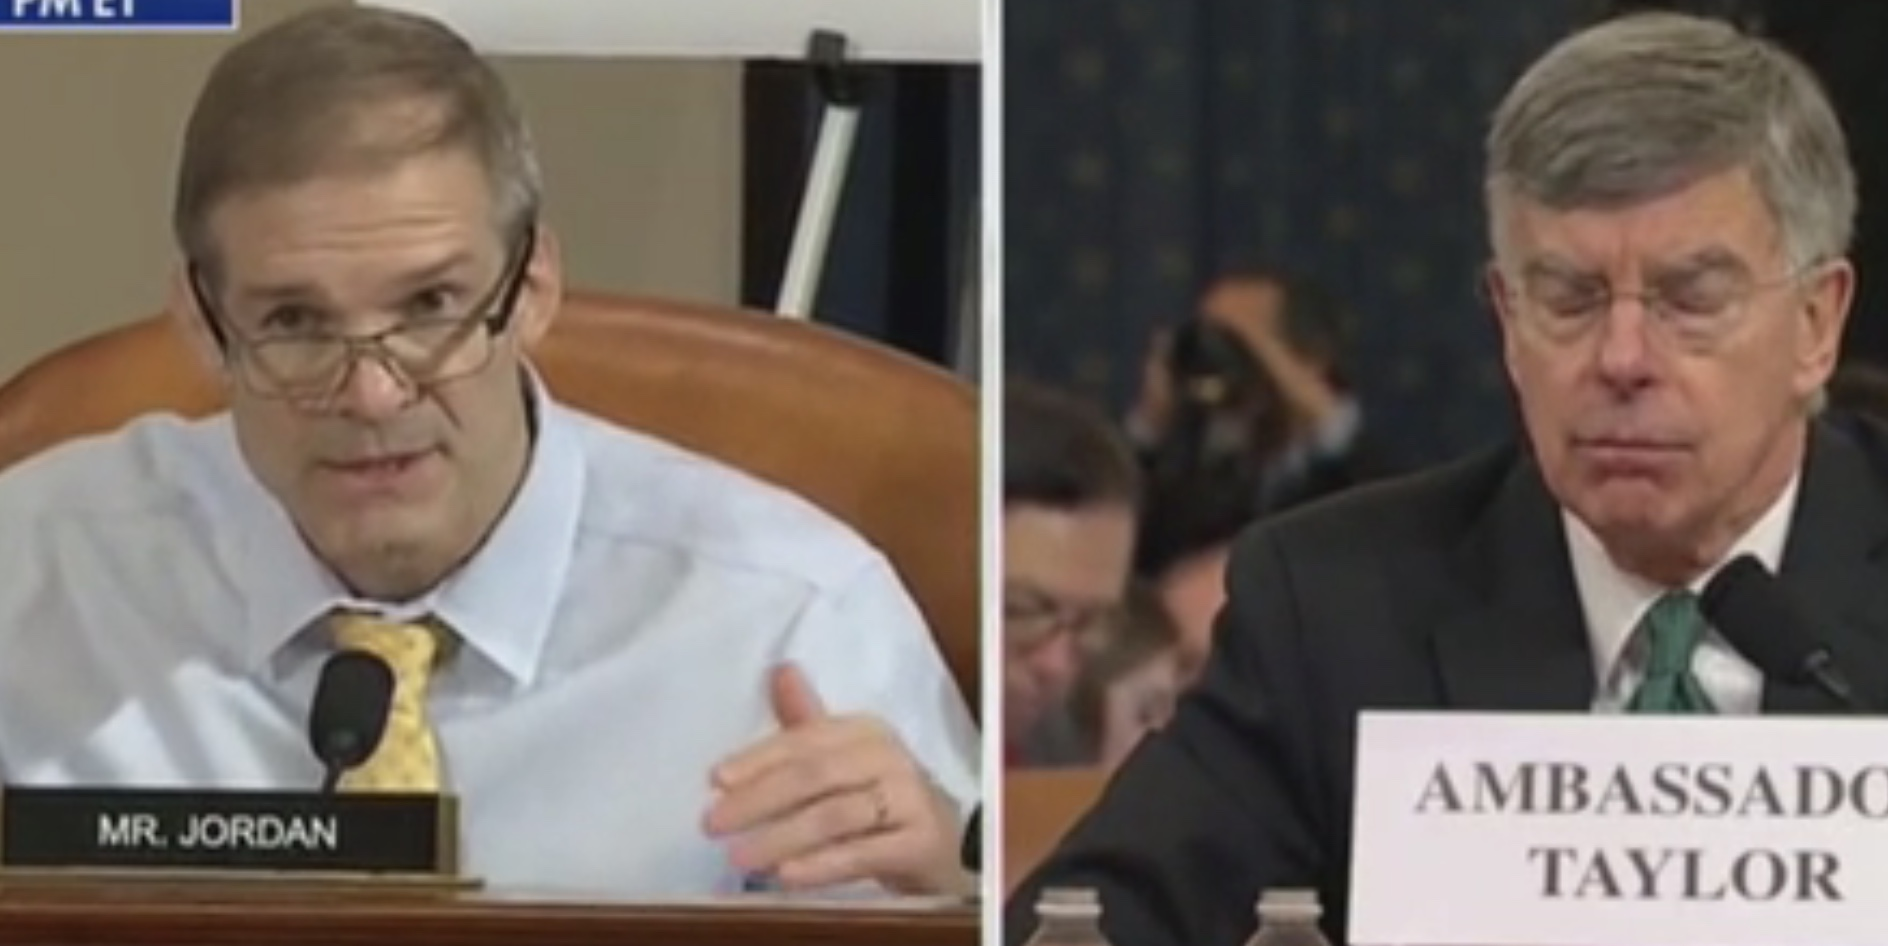 Republican Ohio Rep. Jim Jordan questions Acting Ambassador to Ukraine William Taylor during the first day of impeachment hearings, Nov. 13, 2109. Fox News screenshot.